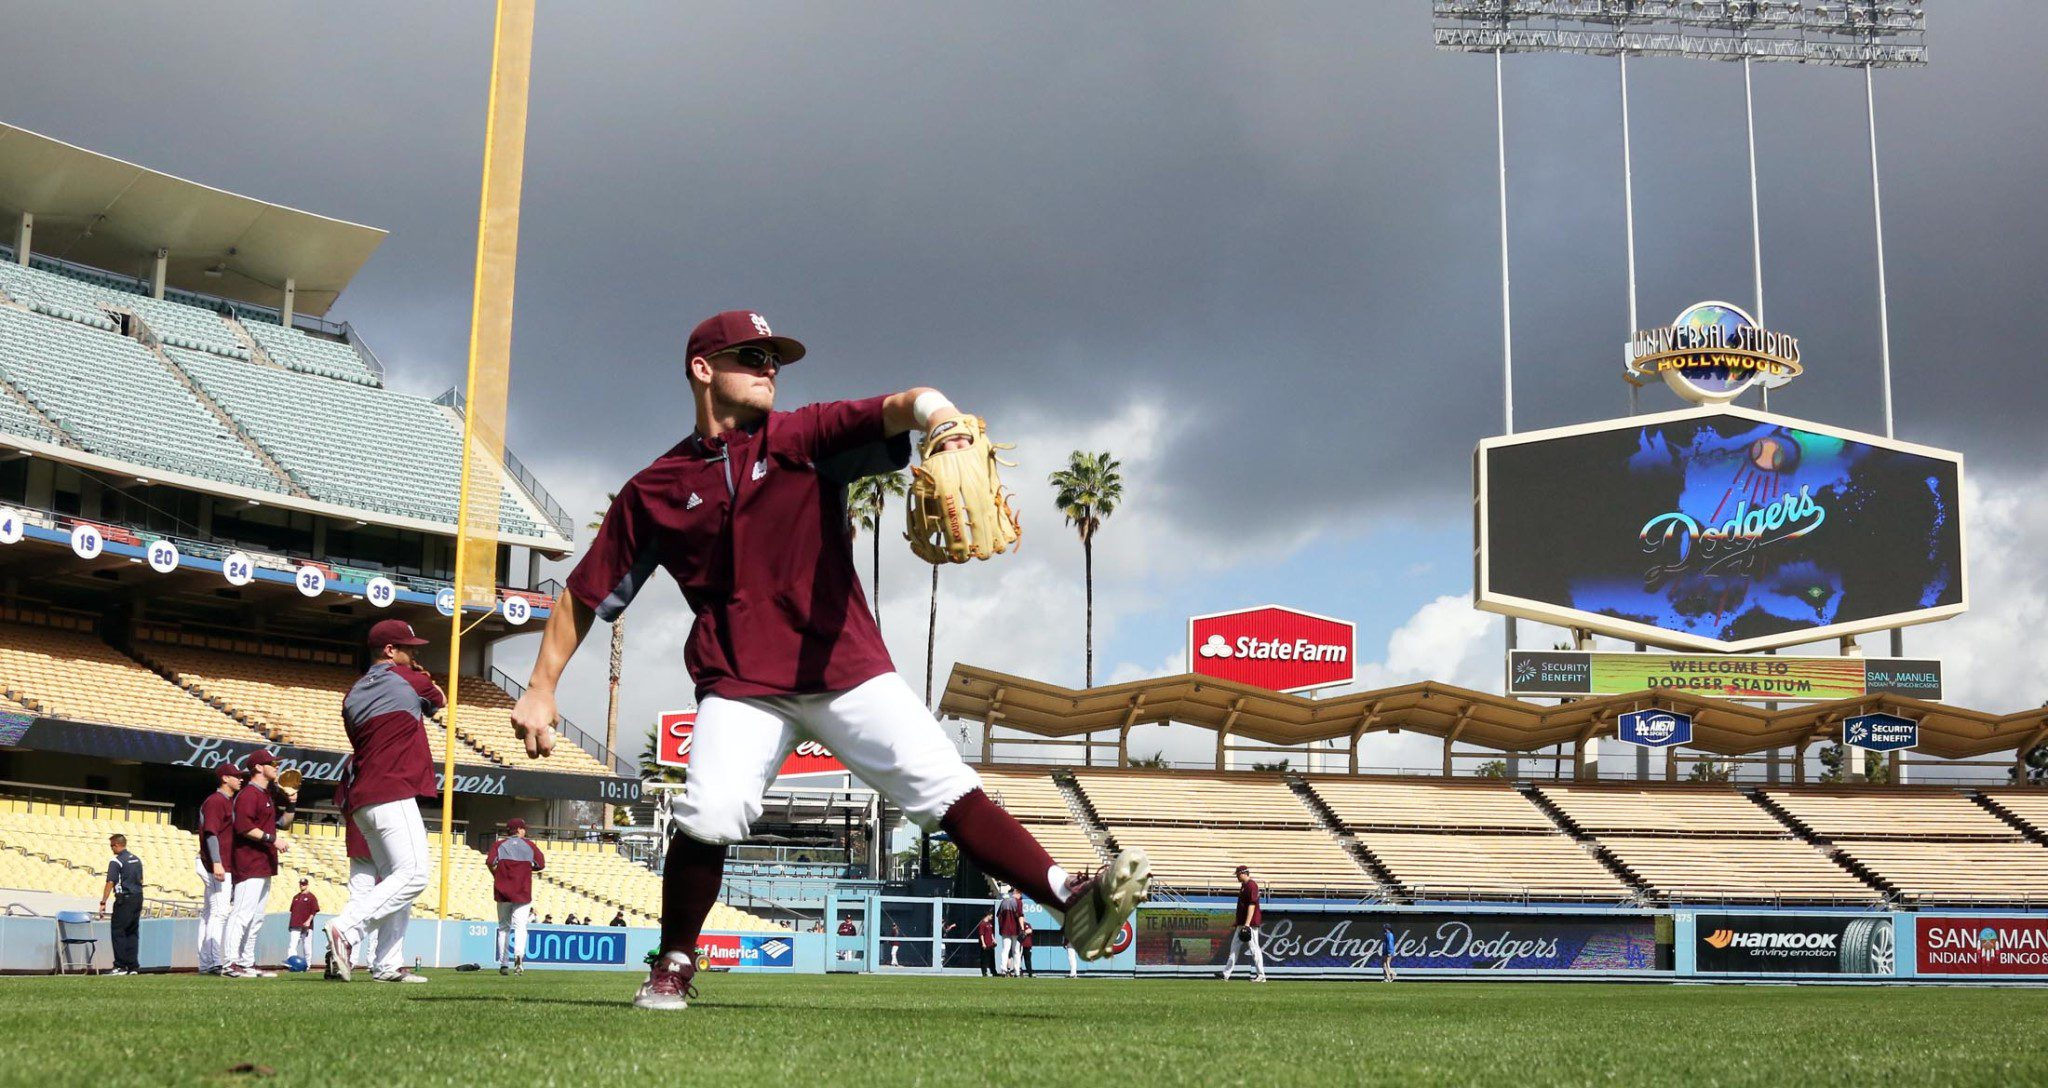 No real reason to use this picture again from Mississippi State at Dodger Stadium, I just like the pic.